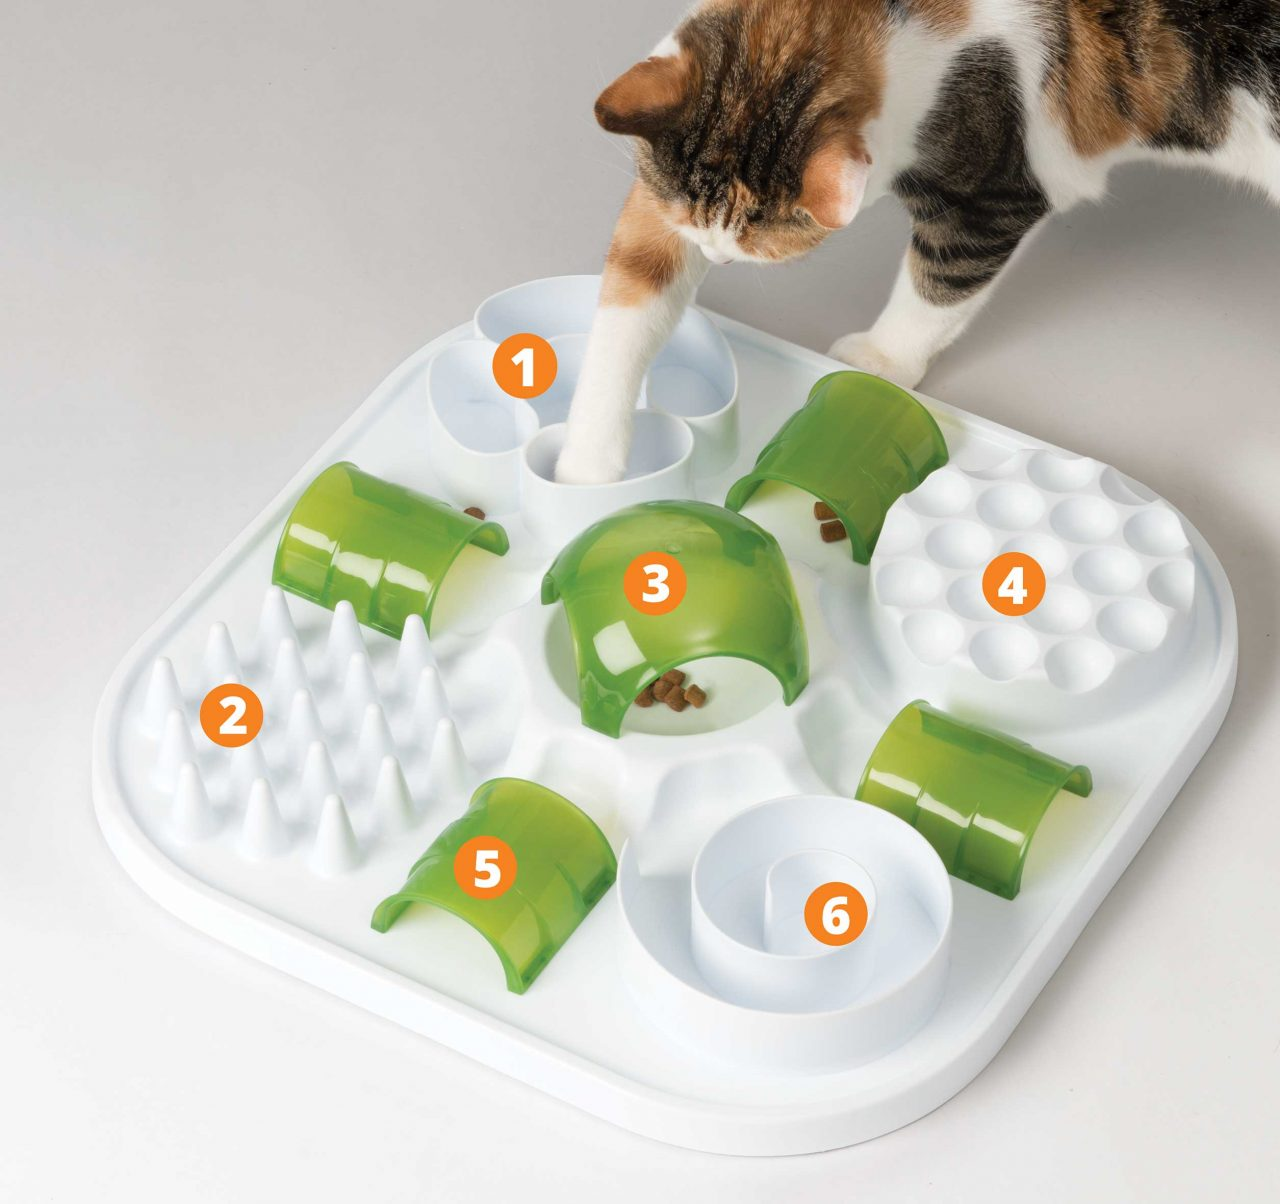 Place treats or kibble in the different puzzle parts